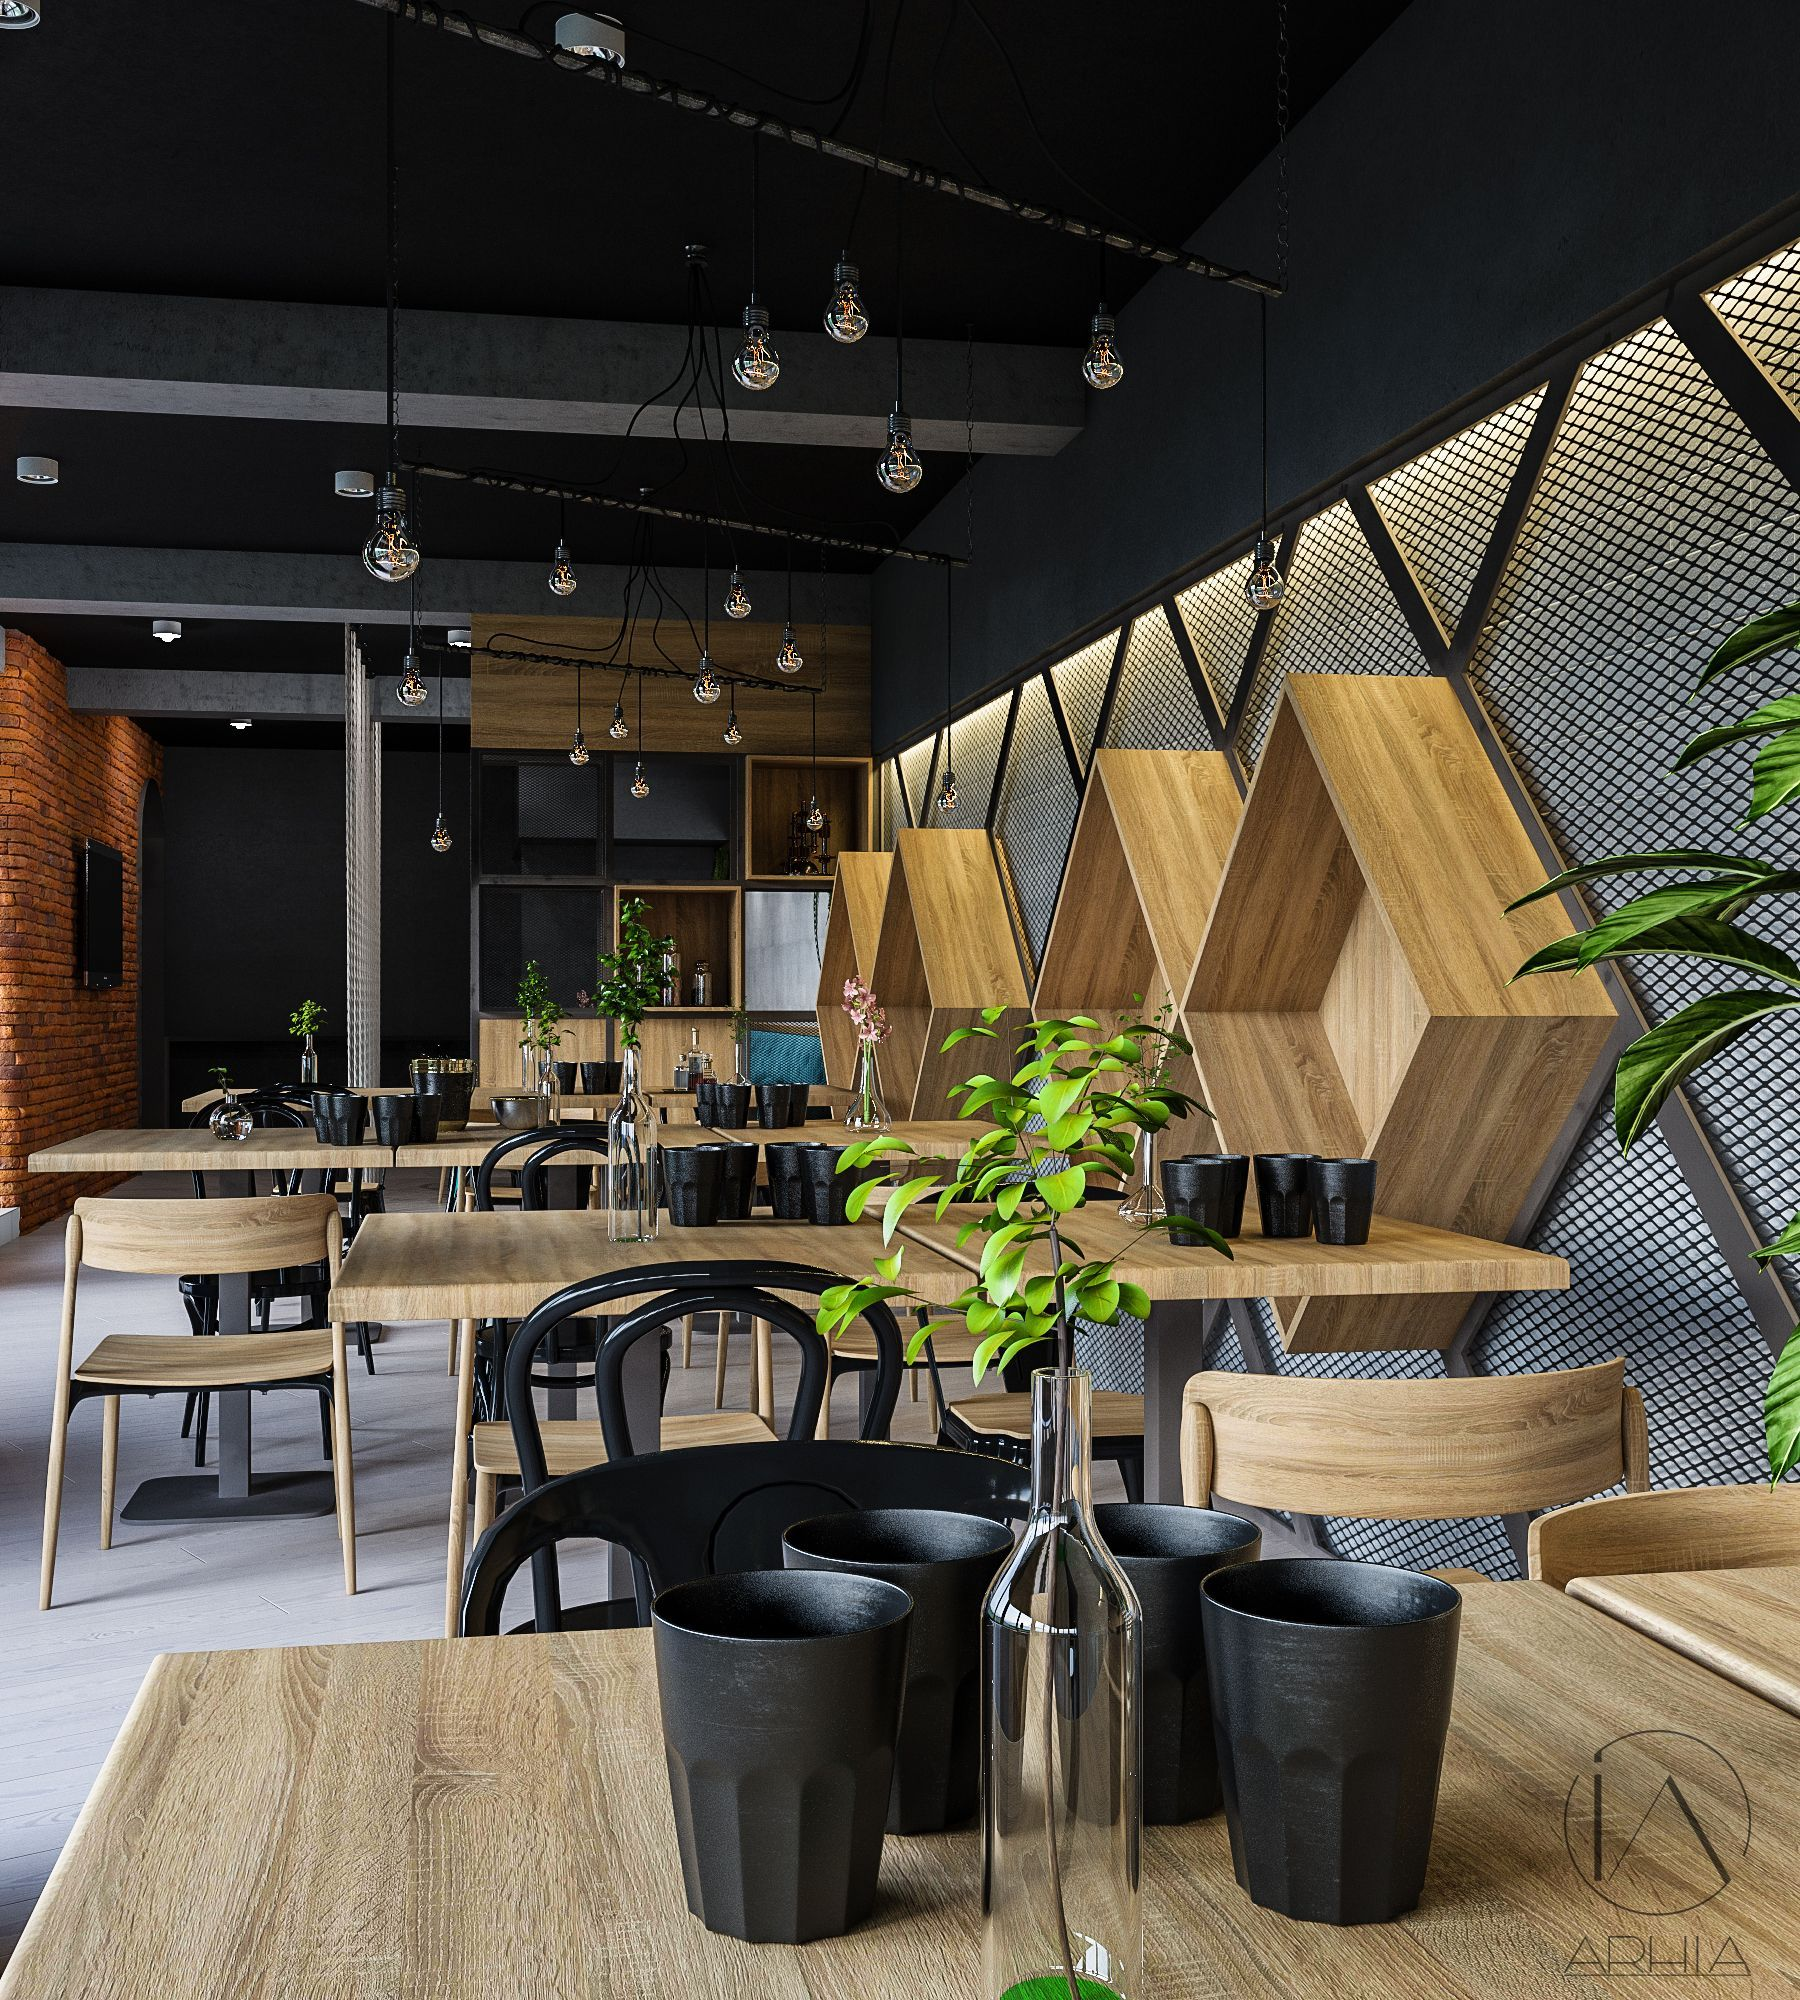 Pub design arhiaarchitecture design lovers greenwall pub design arhiaarchitecture design lovers greenwall restaurant design industrial bar lighting decorated wall aloadofball Image collections